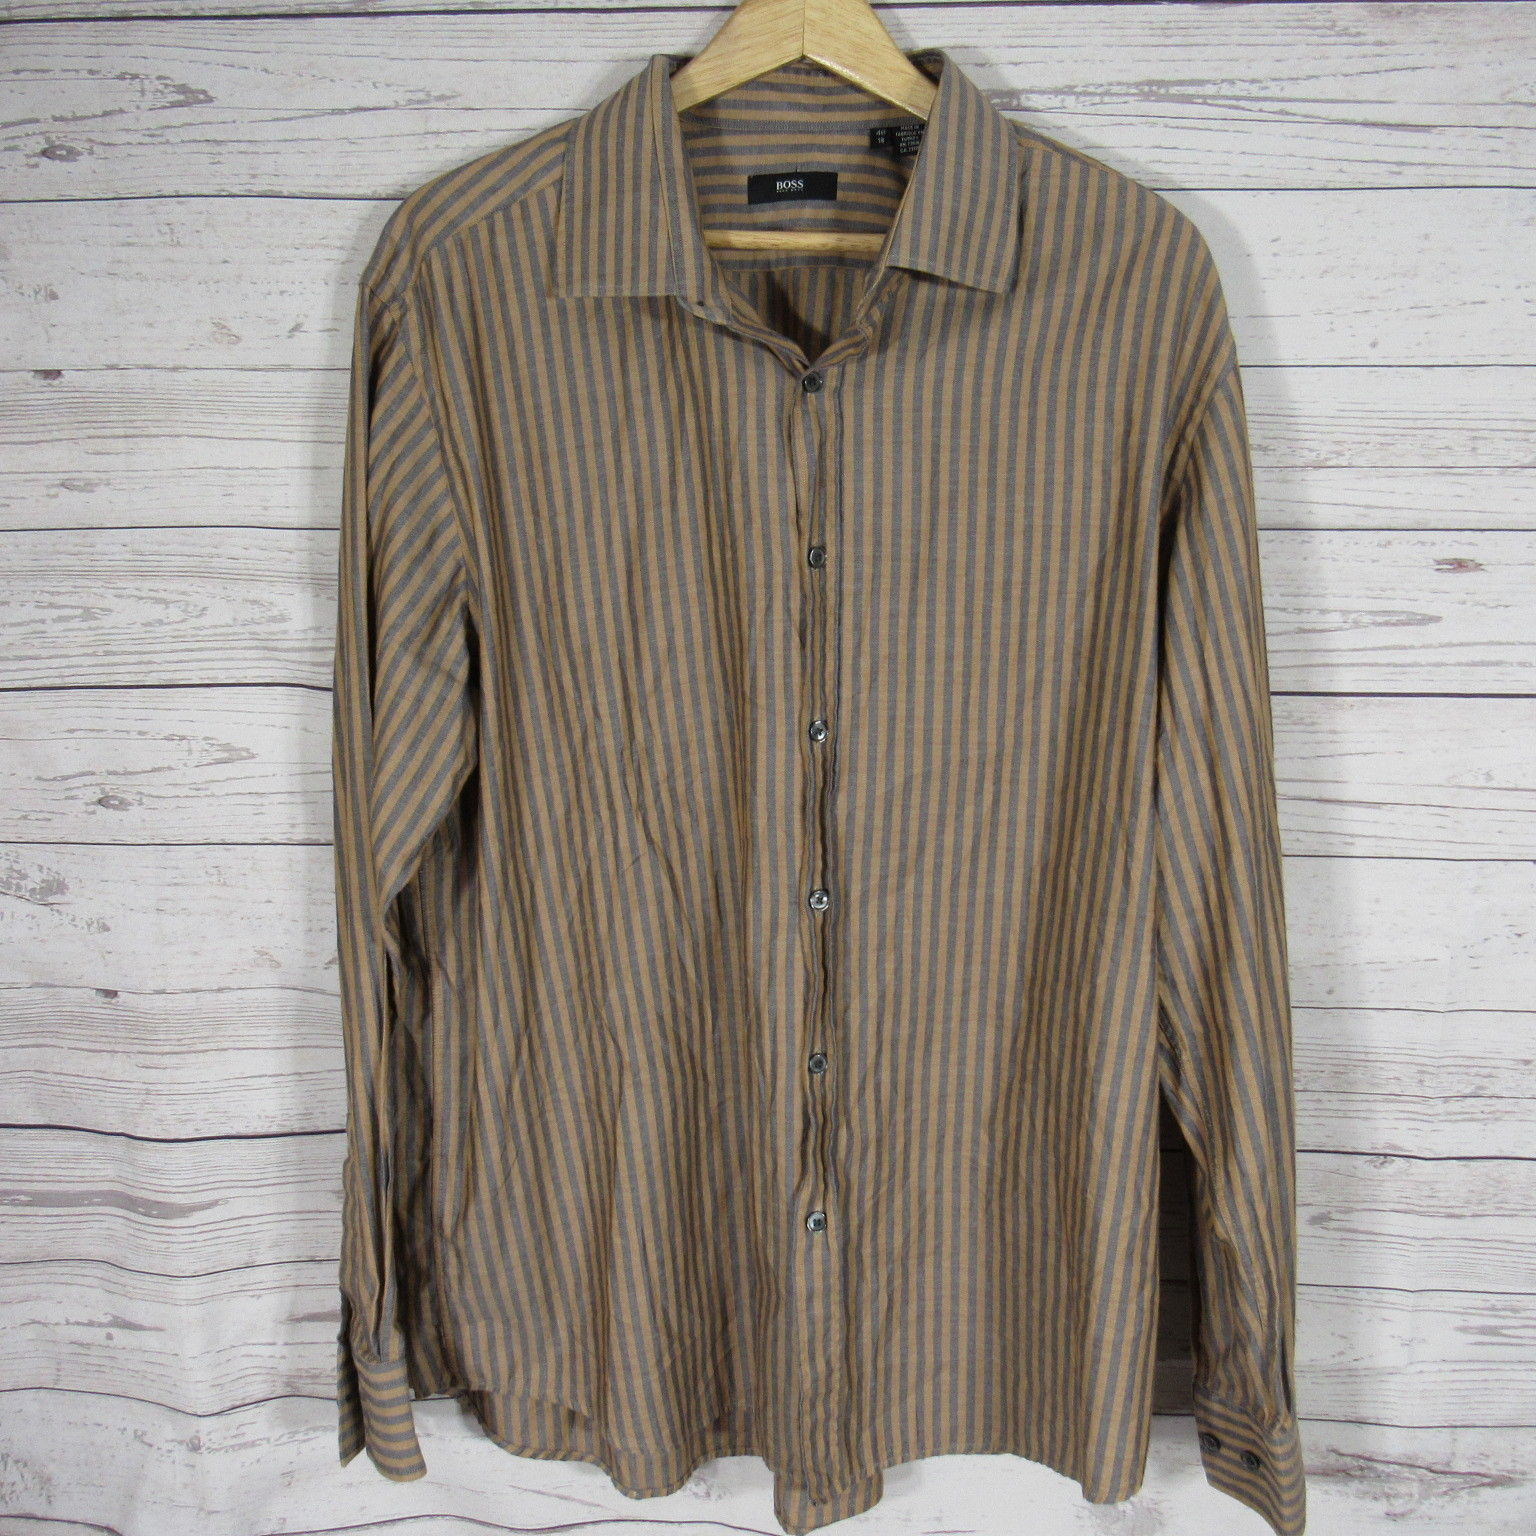 ffcb6827d S l1600. S l1600. Previous. Hugo Boss Dress Shirt Mens Large L 18 Blue  Brown Vertical Stripes Button Up